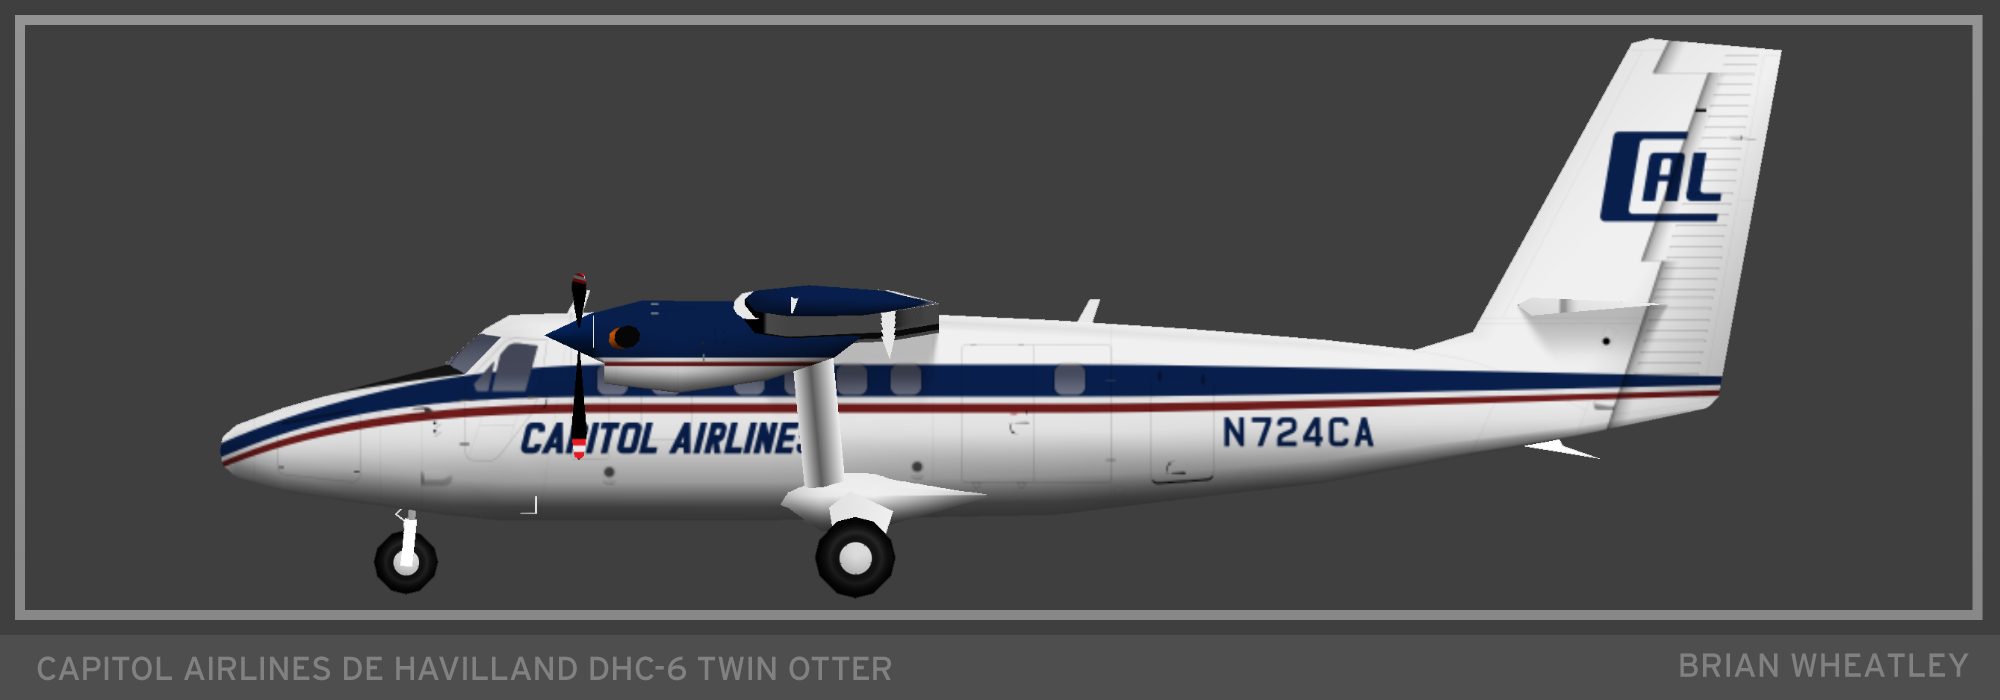 brw_dhc6_capitolairlines